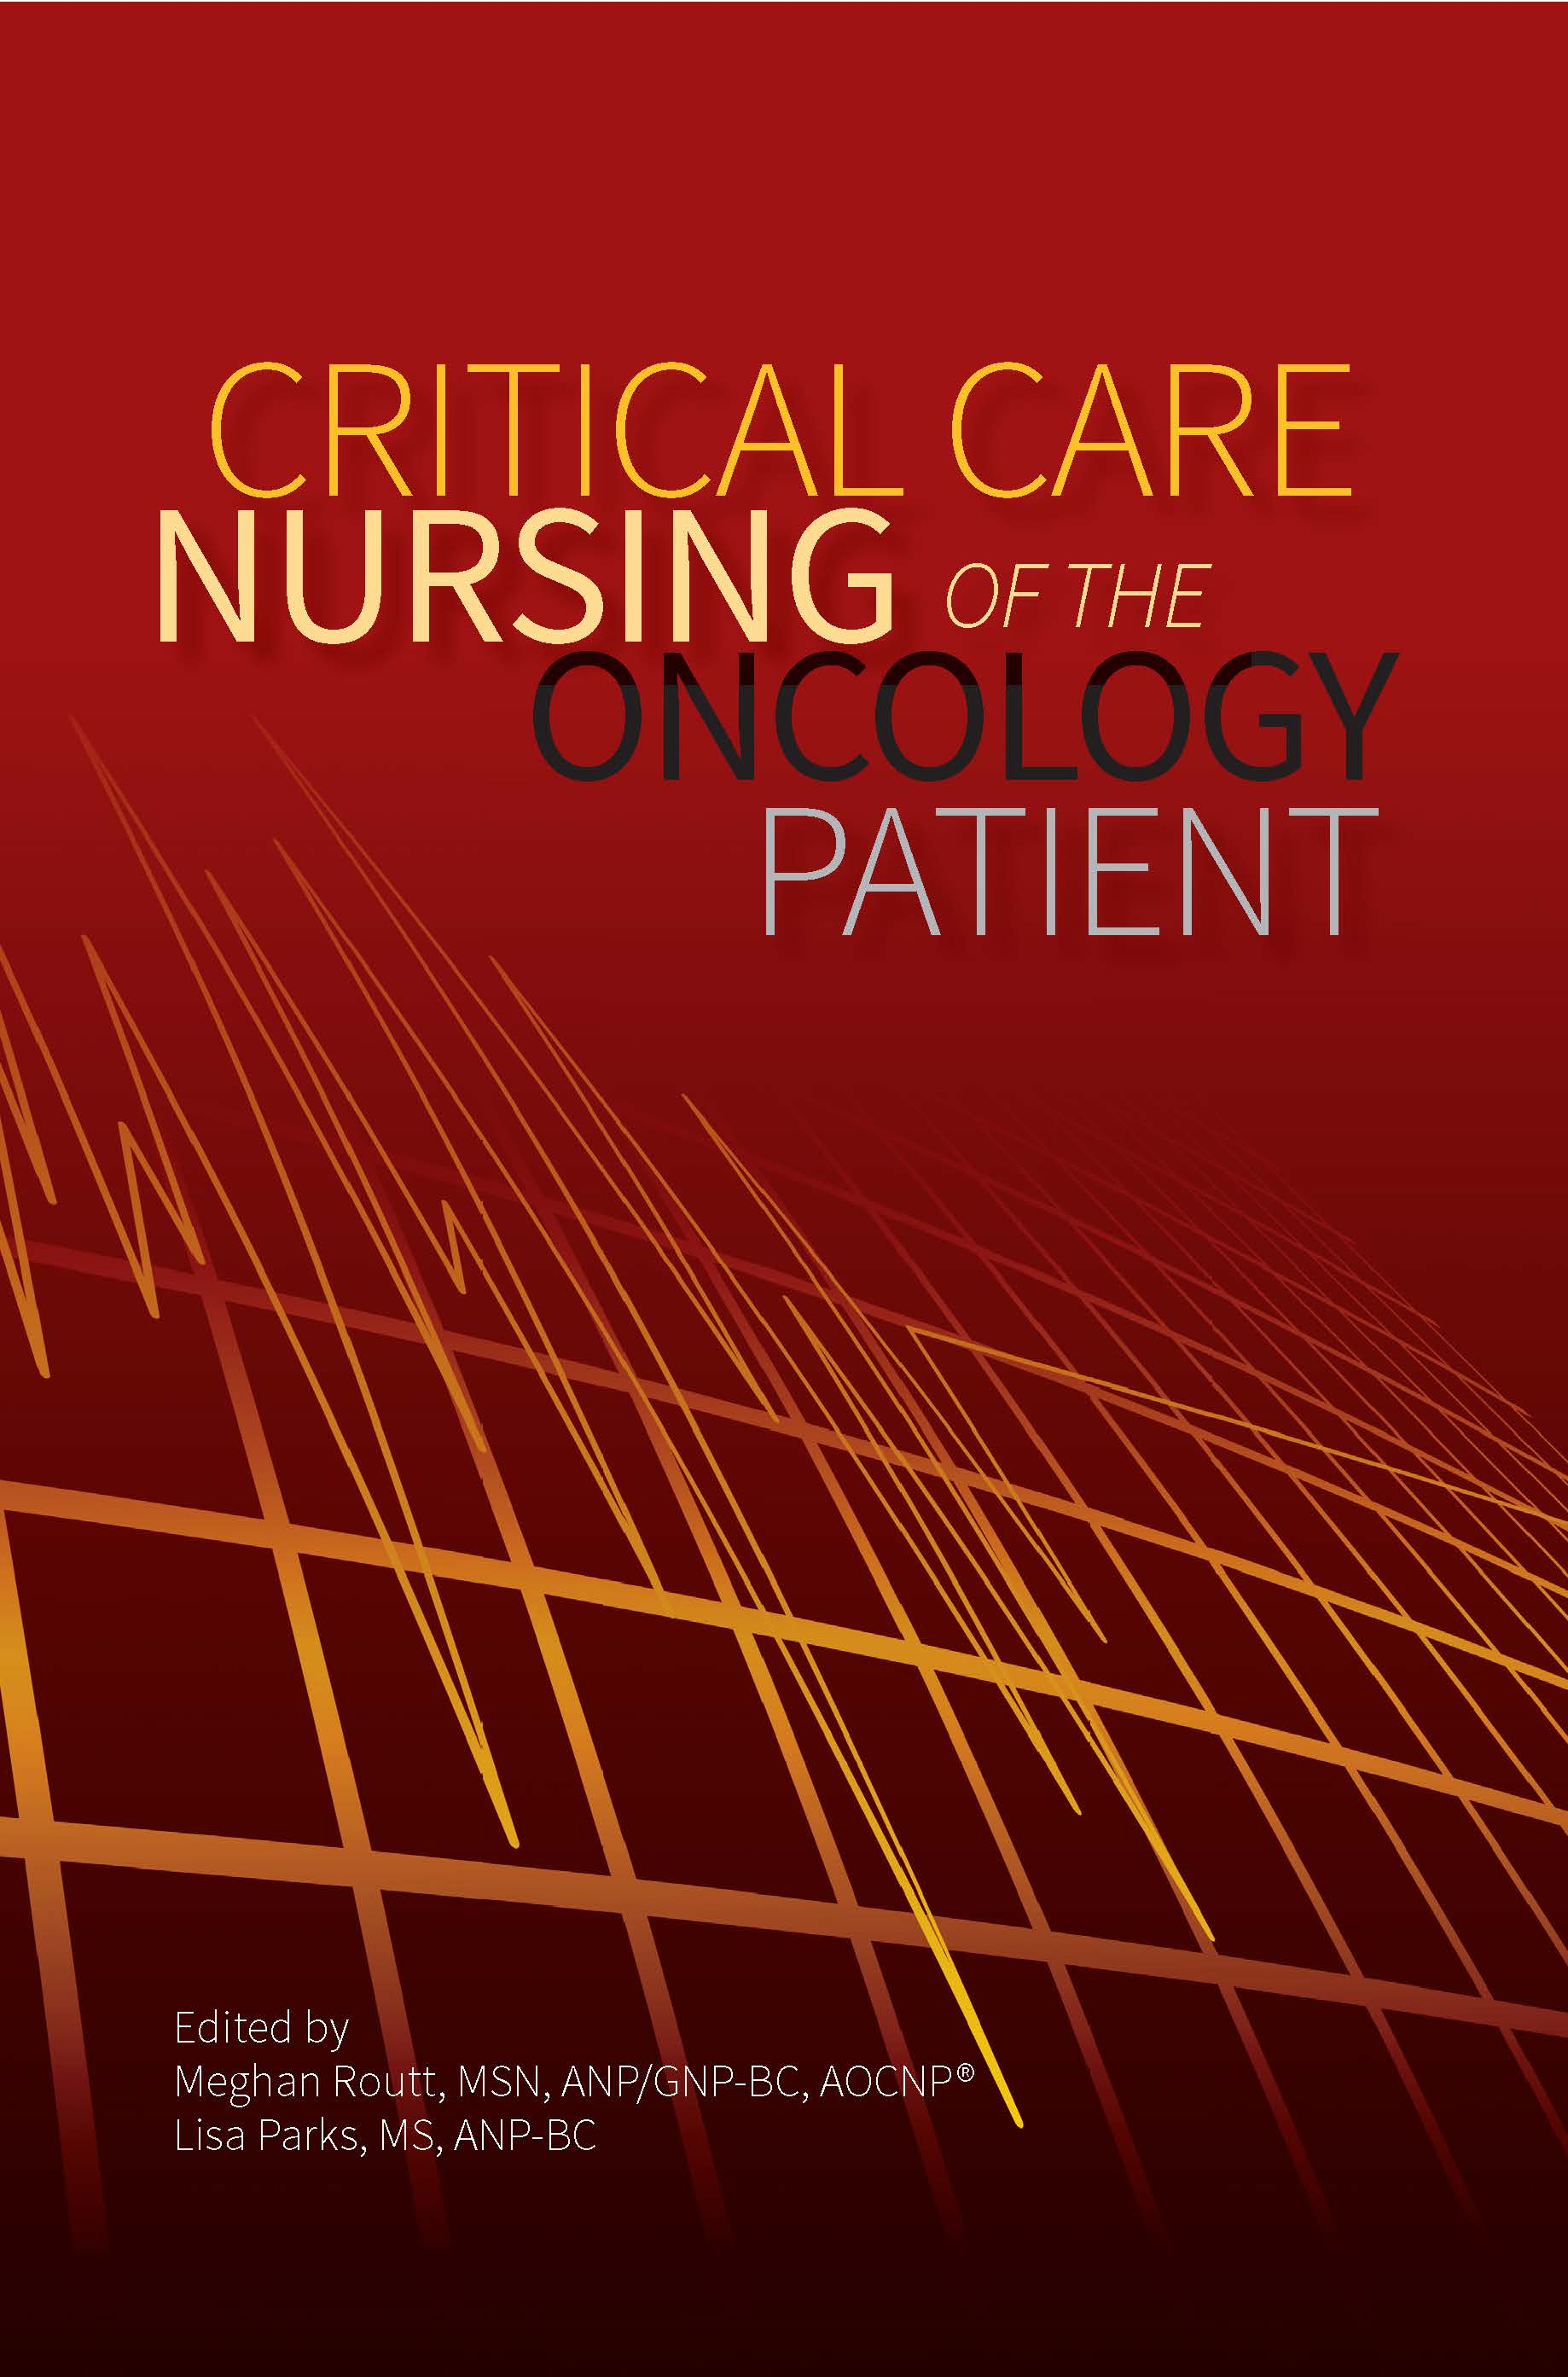 Radiation Oncology Nurse Cover Letter Critical Care Nursing Of The Oncology Patient Ons